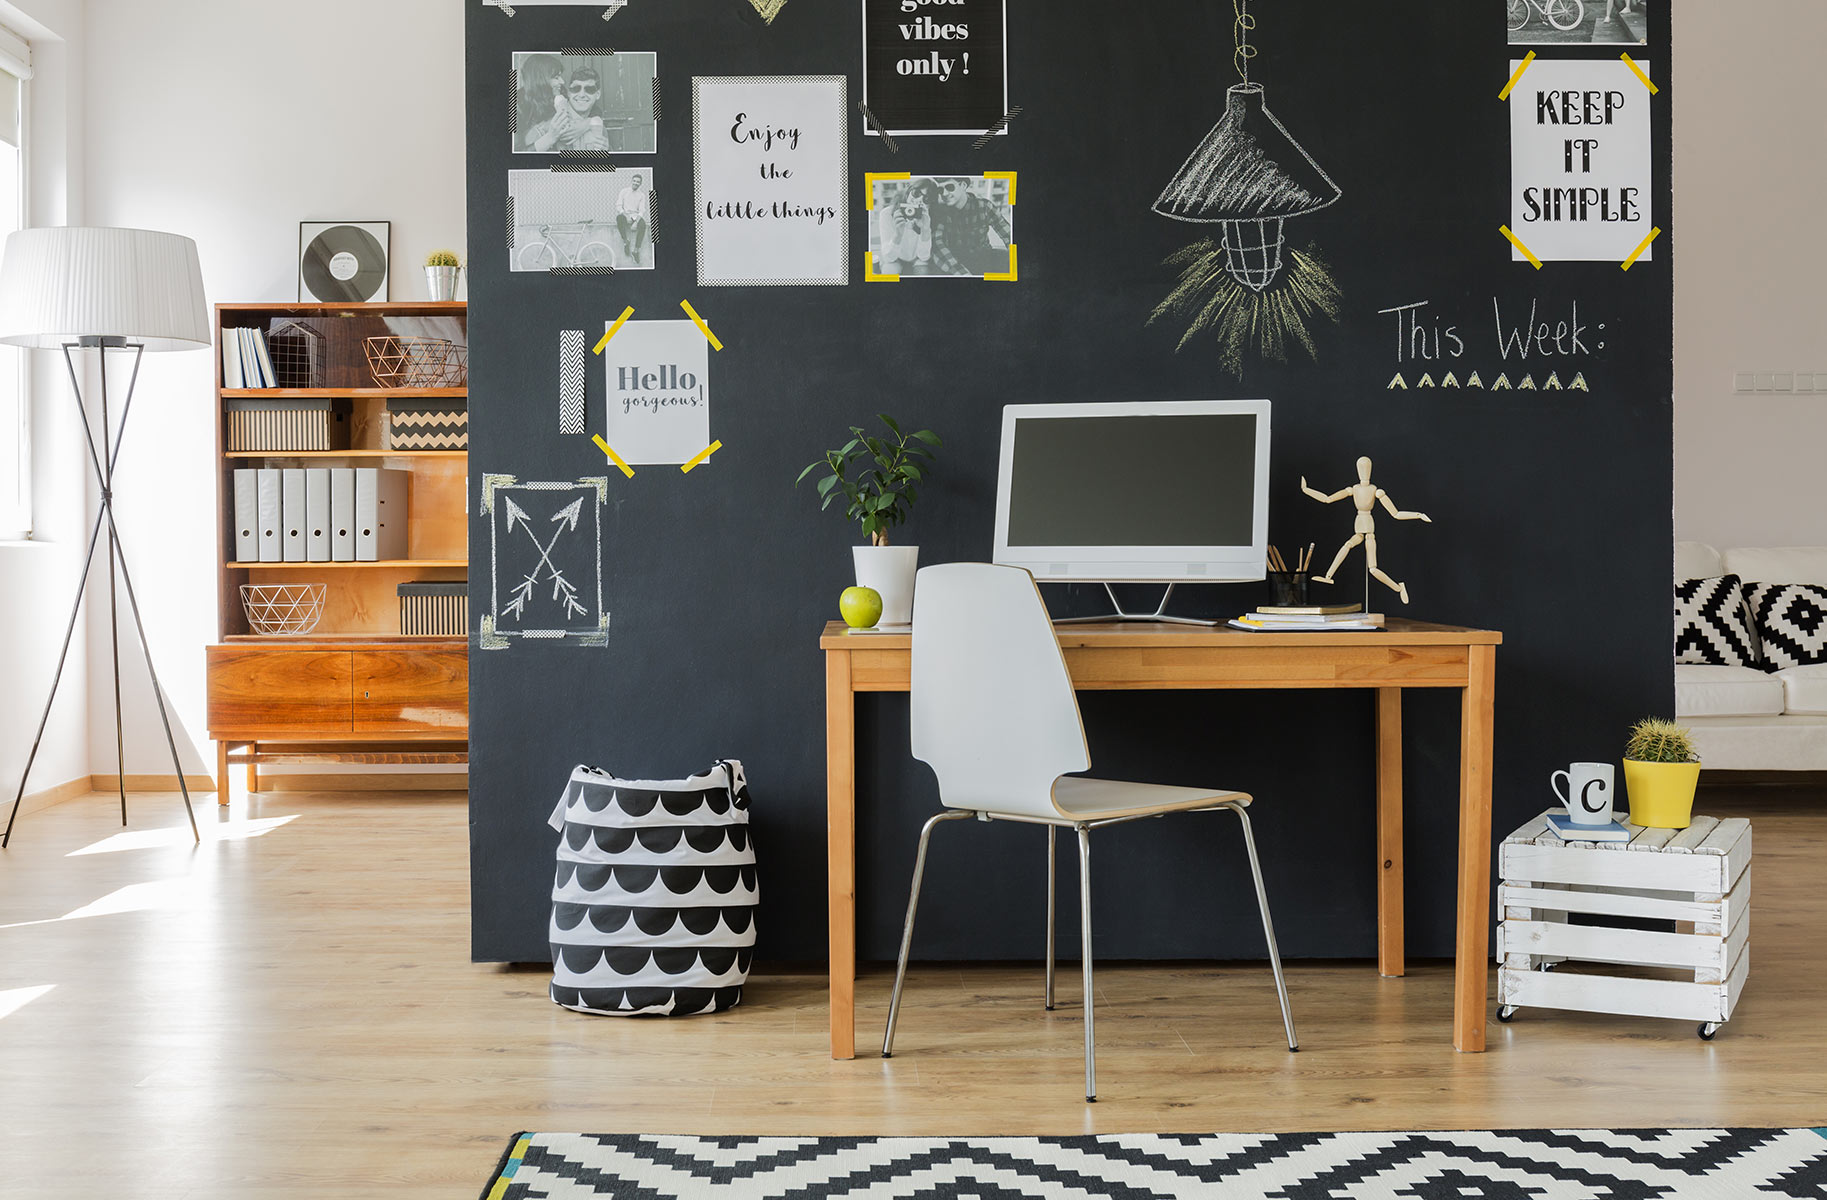 Il gigante centri commerciali come creare home office